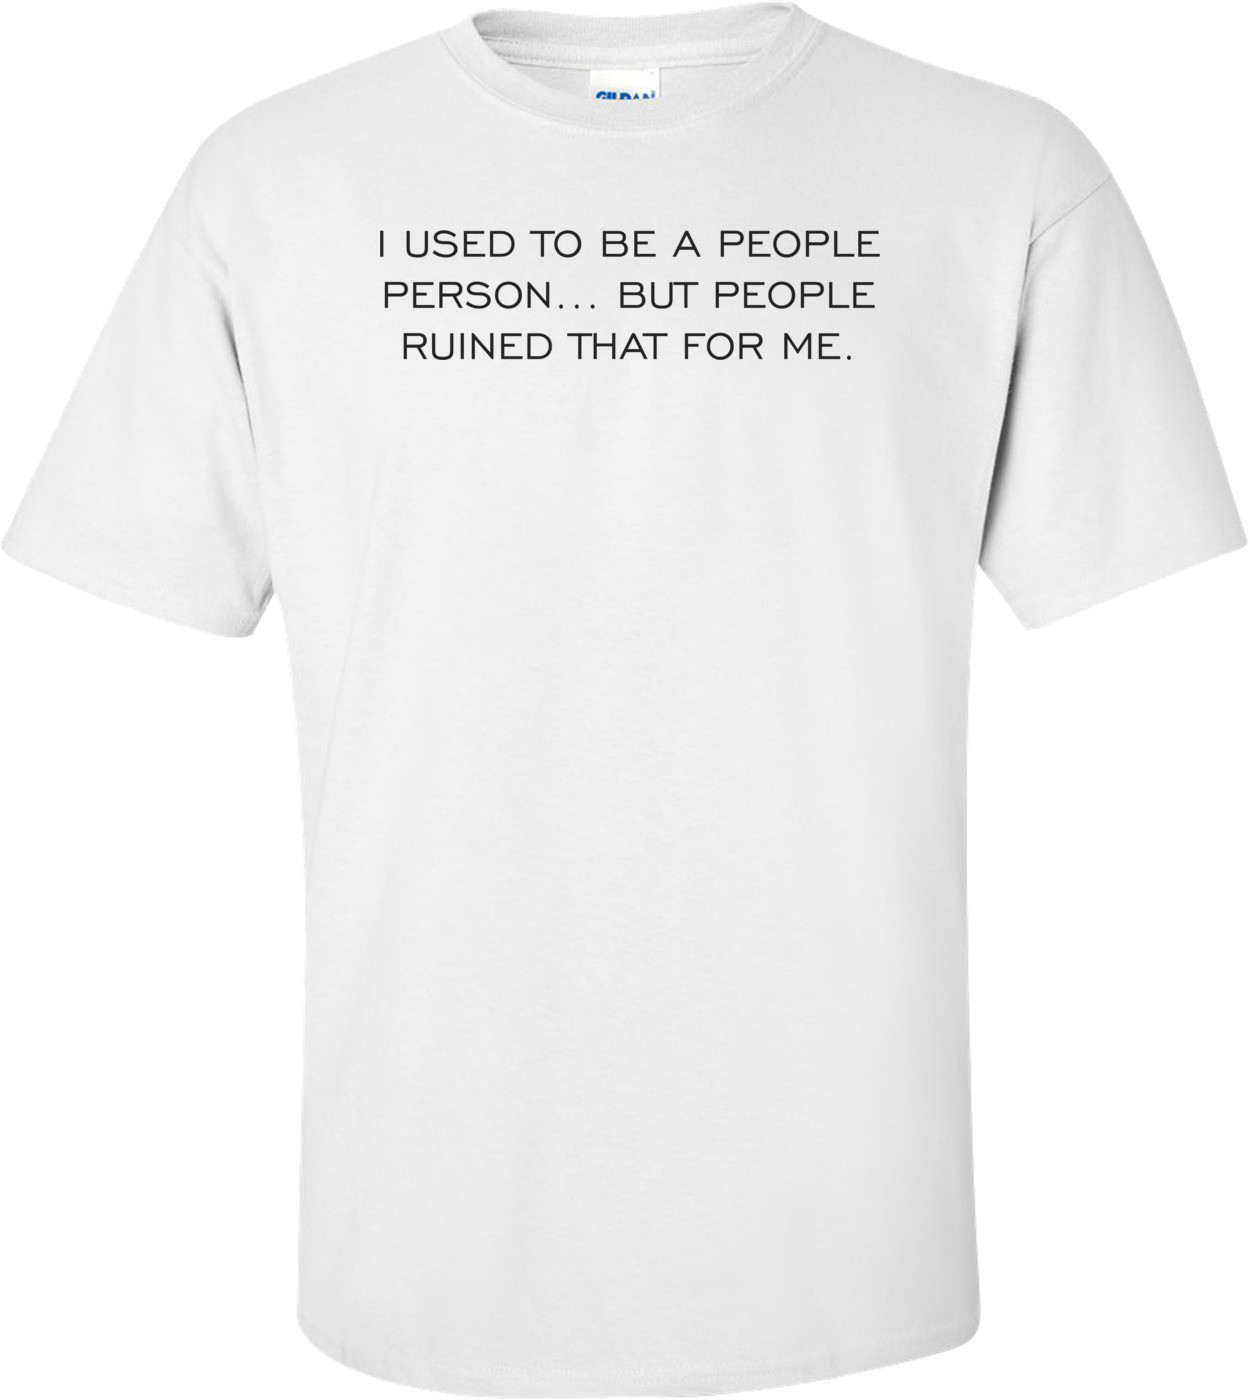 I USED TO BE A PEOPLE PERSON... BUT PEOPLE RUINED THAT FOR ME. Shirt